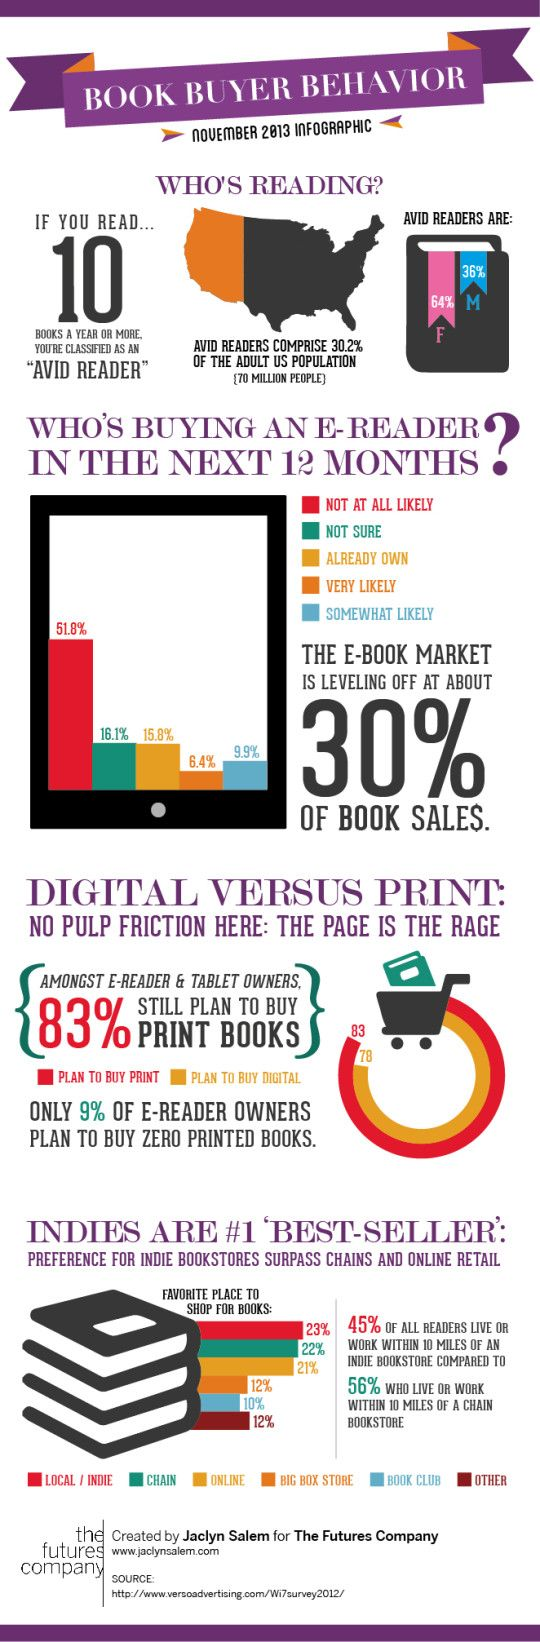 Interesting infographic on American book buying. It would be interesting to see a UK version. Has anyone seen one?